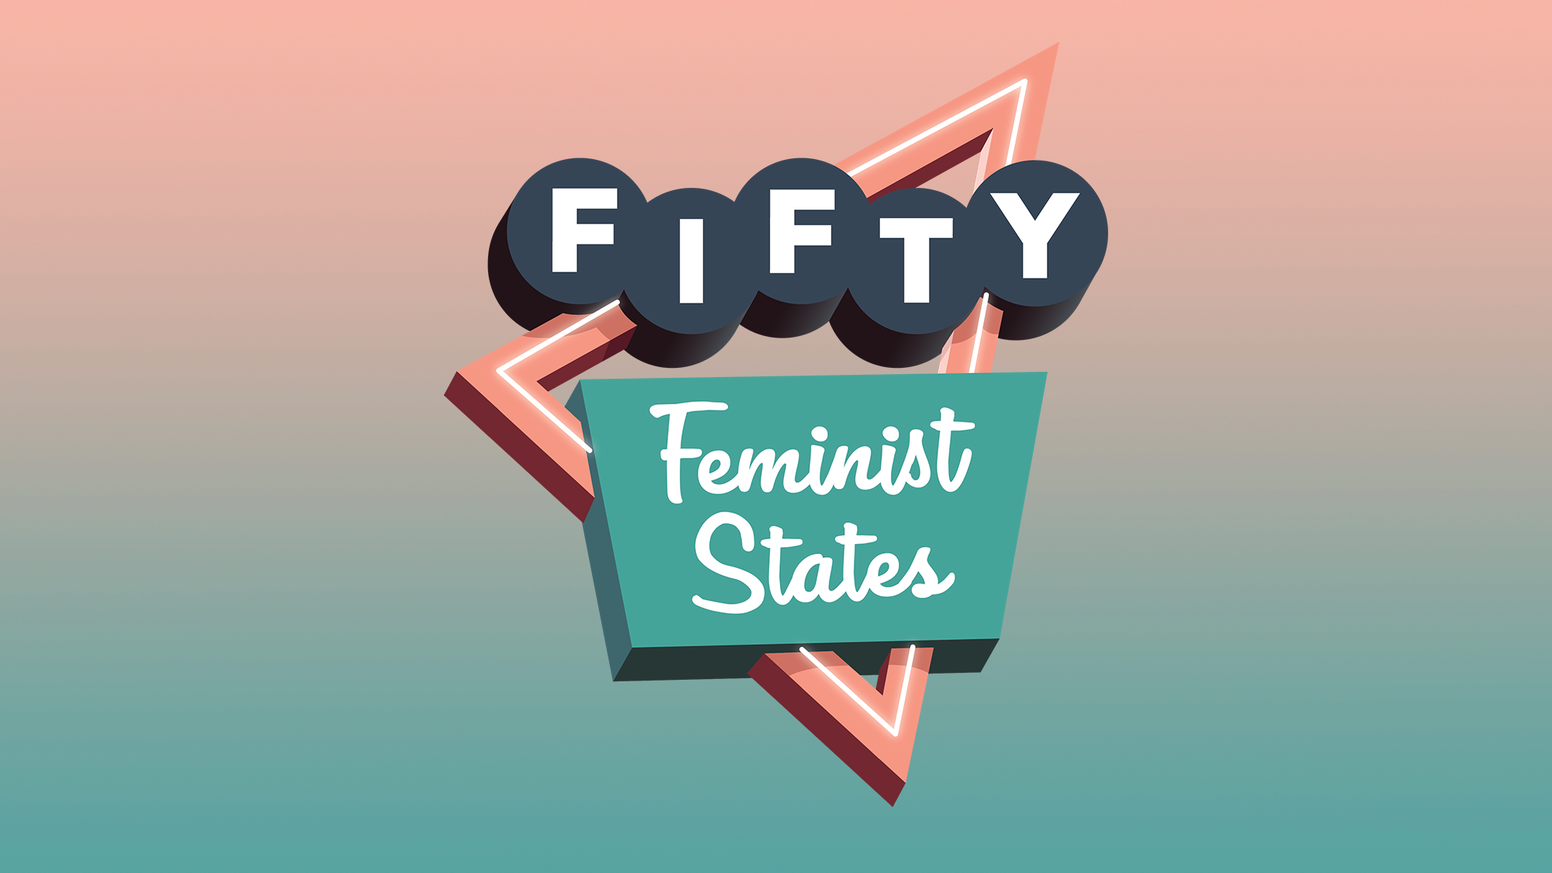 Help fund future seasons of this roadtripping, storytelling podcast featuring feminist activists and artists across the US!